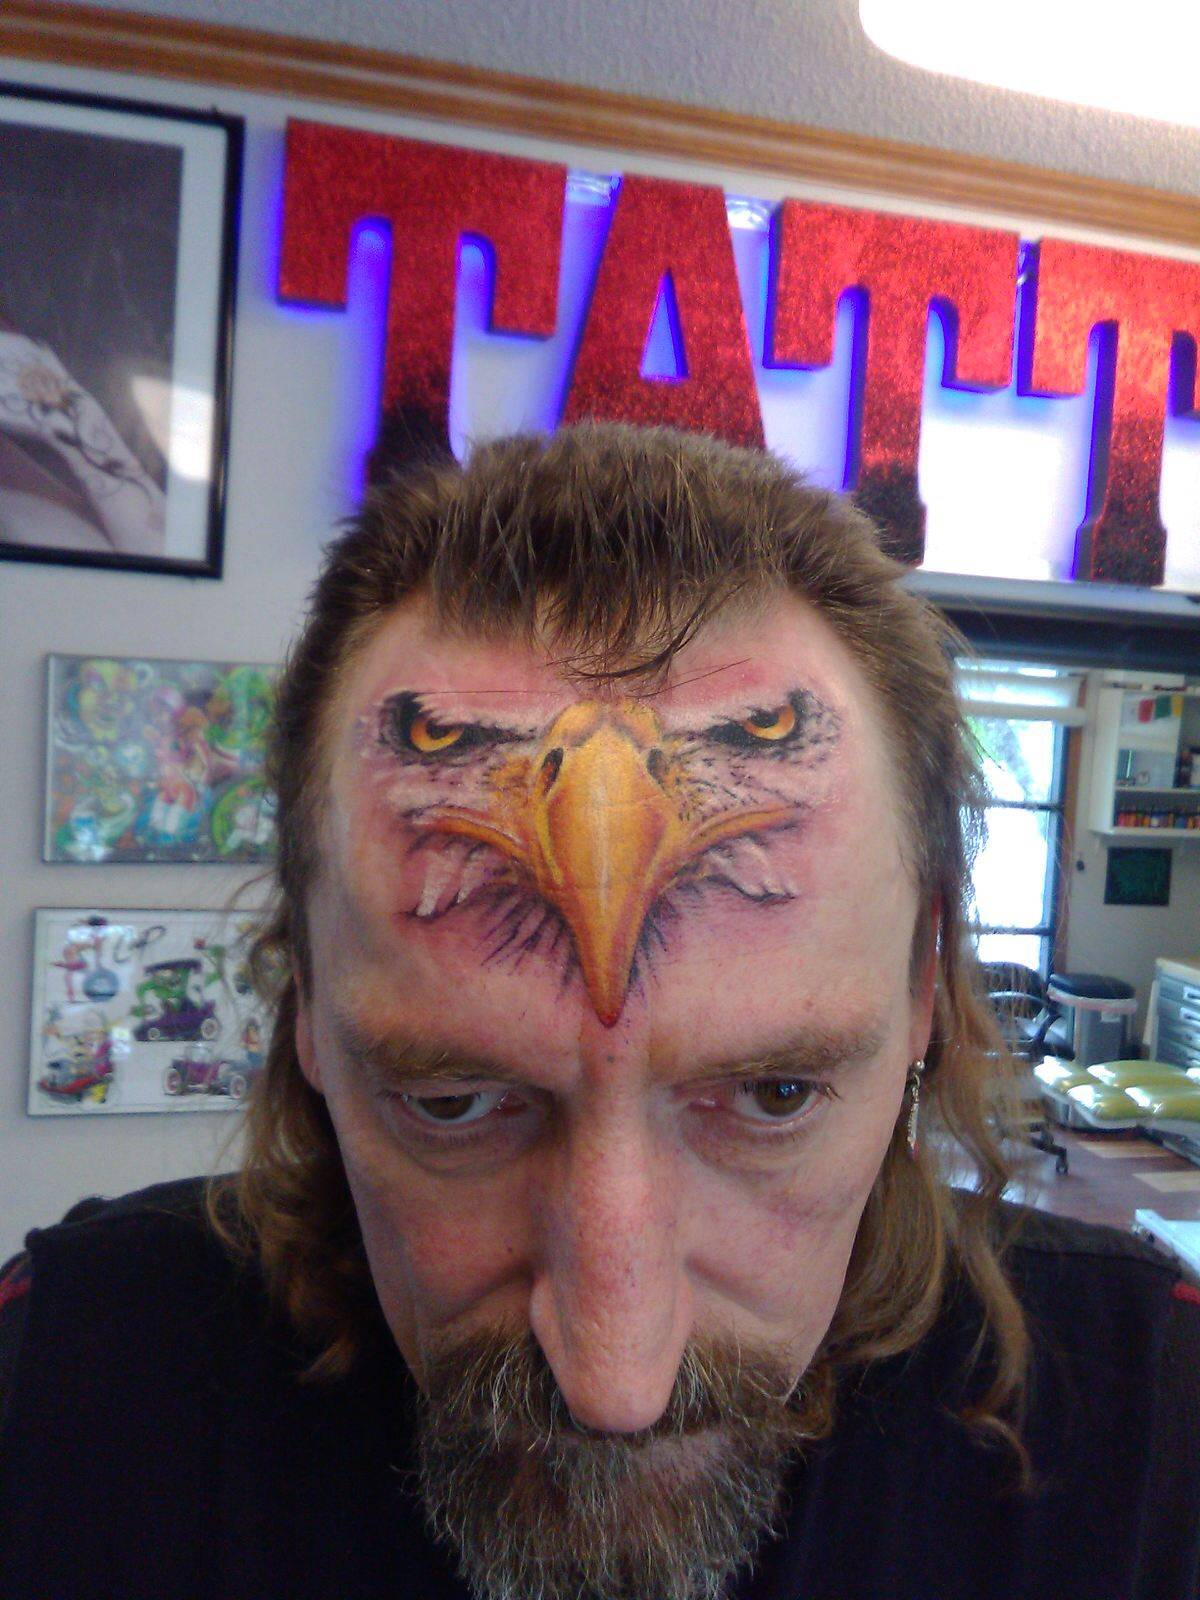 tattoo of eagle face on a man's forehead